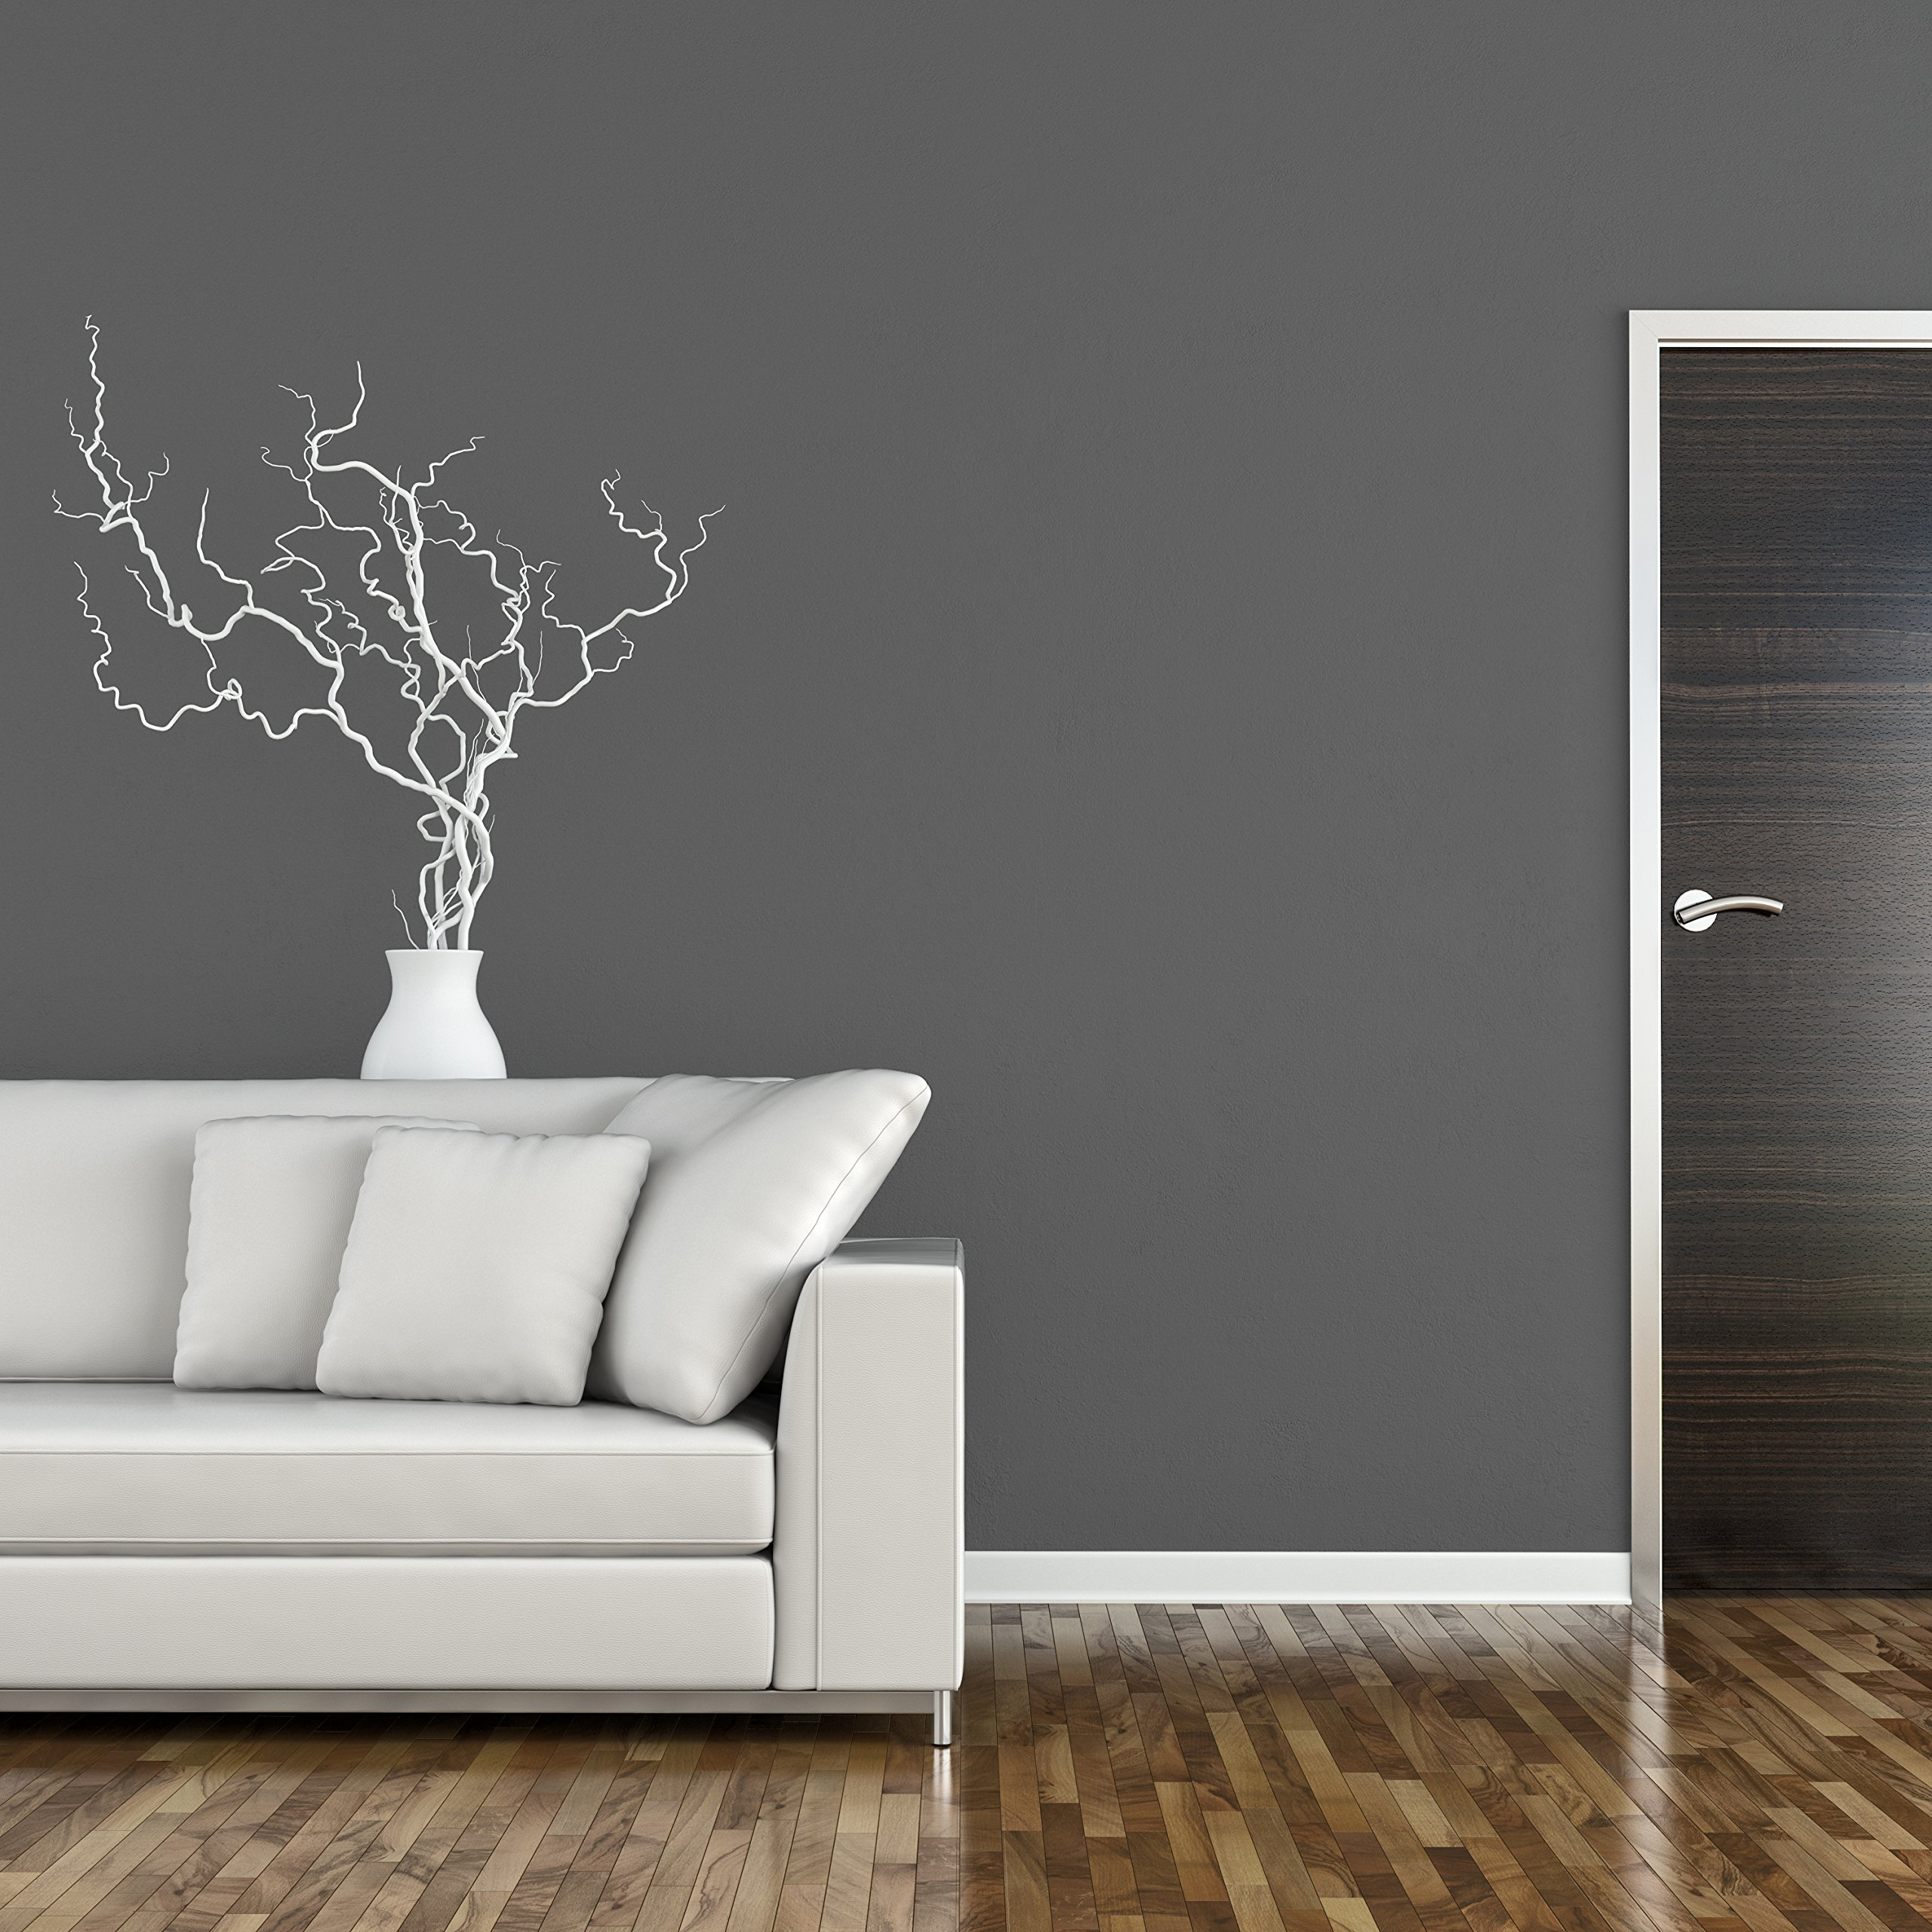 TemPaint: Removable Self-Adhesive Peel and Stick Non Woven Wallpaper Mural Wall Sticker Decals 23.6 Inches Wide by 32.2 Feet Long Roll (Portland Gray) by TemPaint (Image #4)